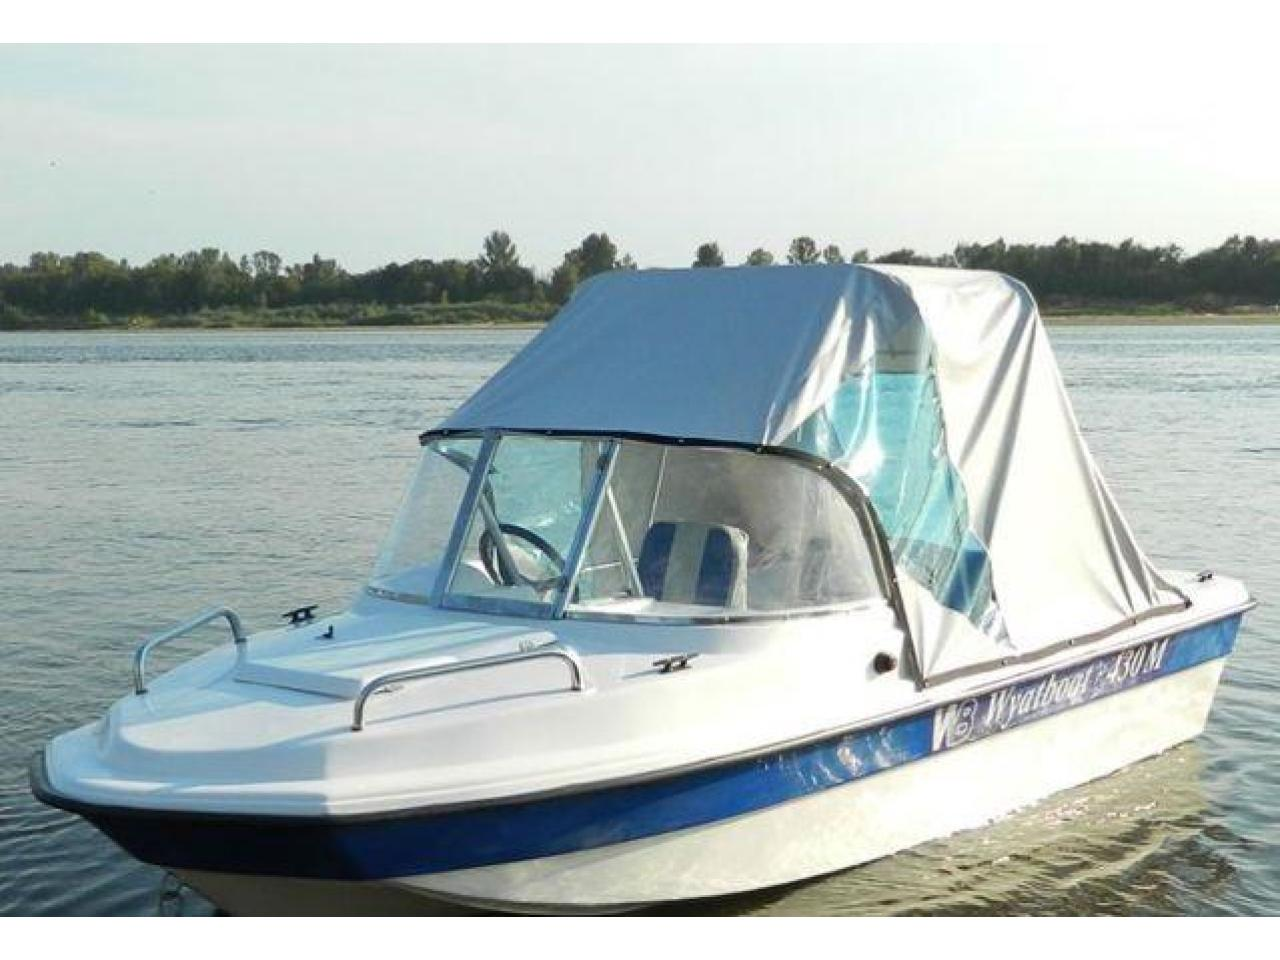 Новый катер Wyatboat 430M тримаран - 5/8